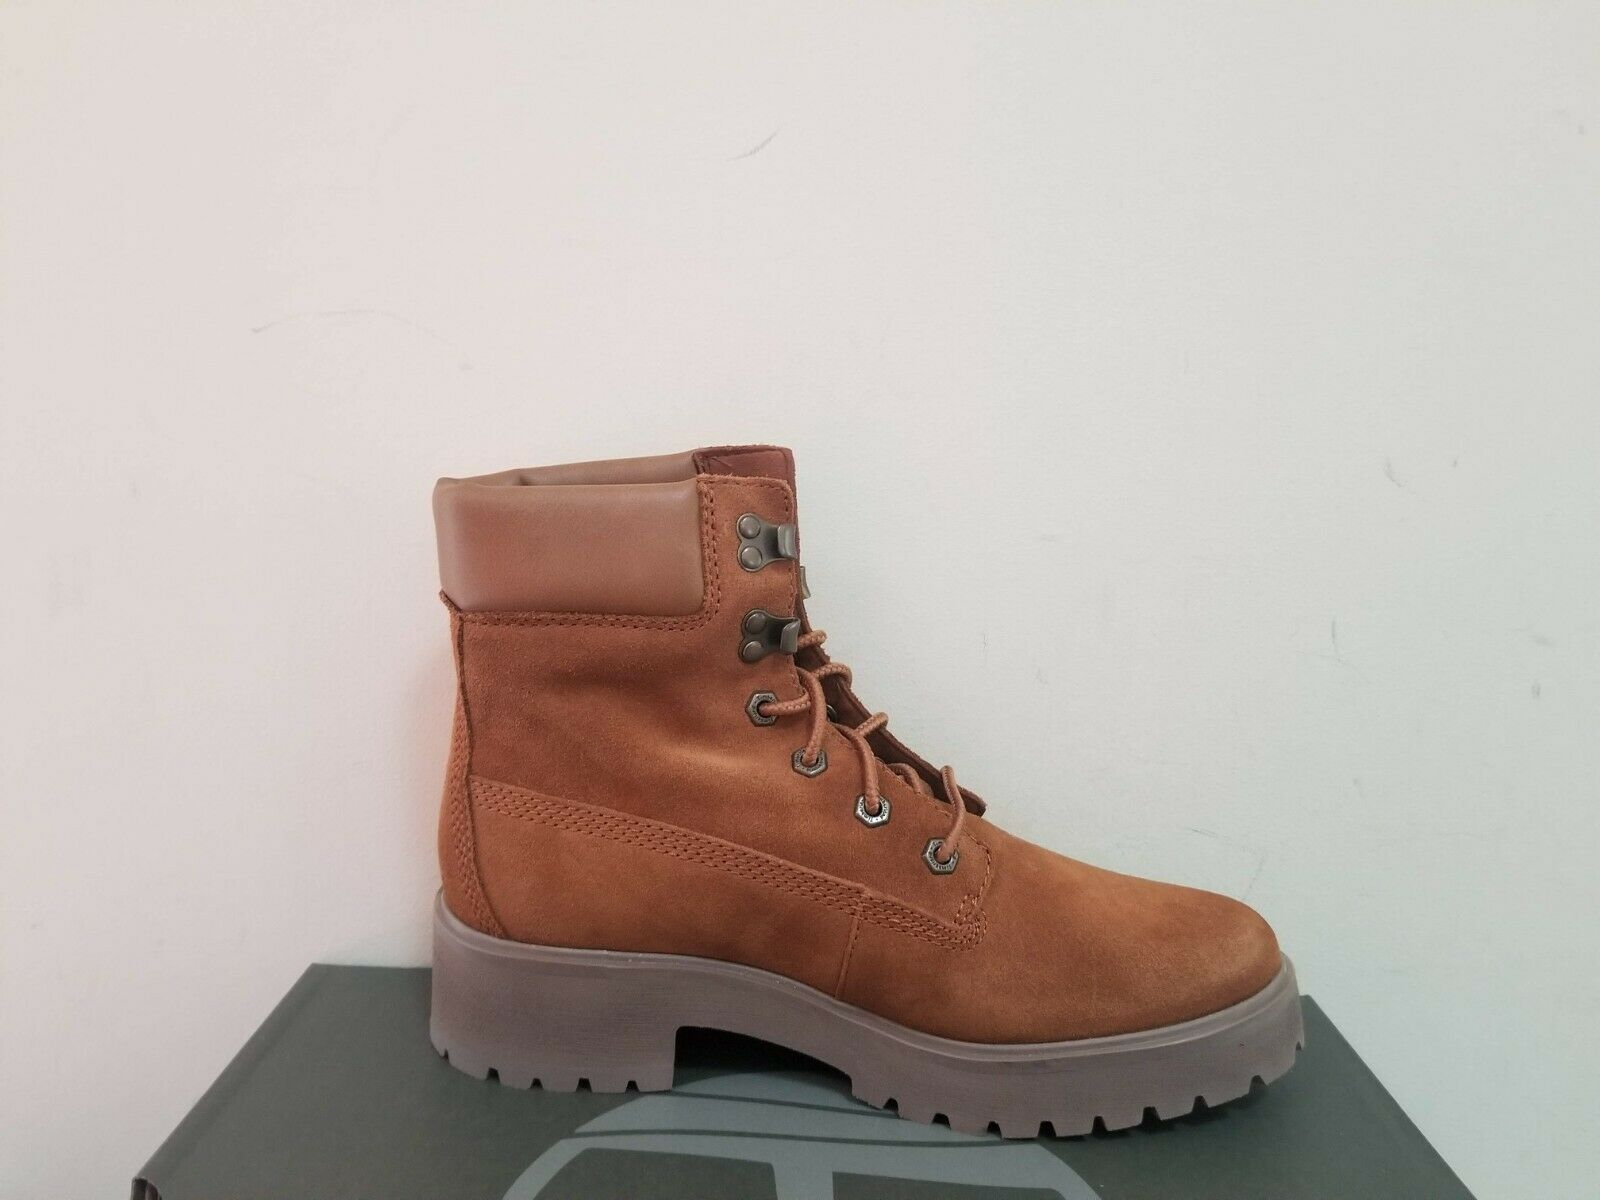 Timberland Women's  Carnaby Cool  6-Inch  Boots  NIB 1